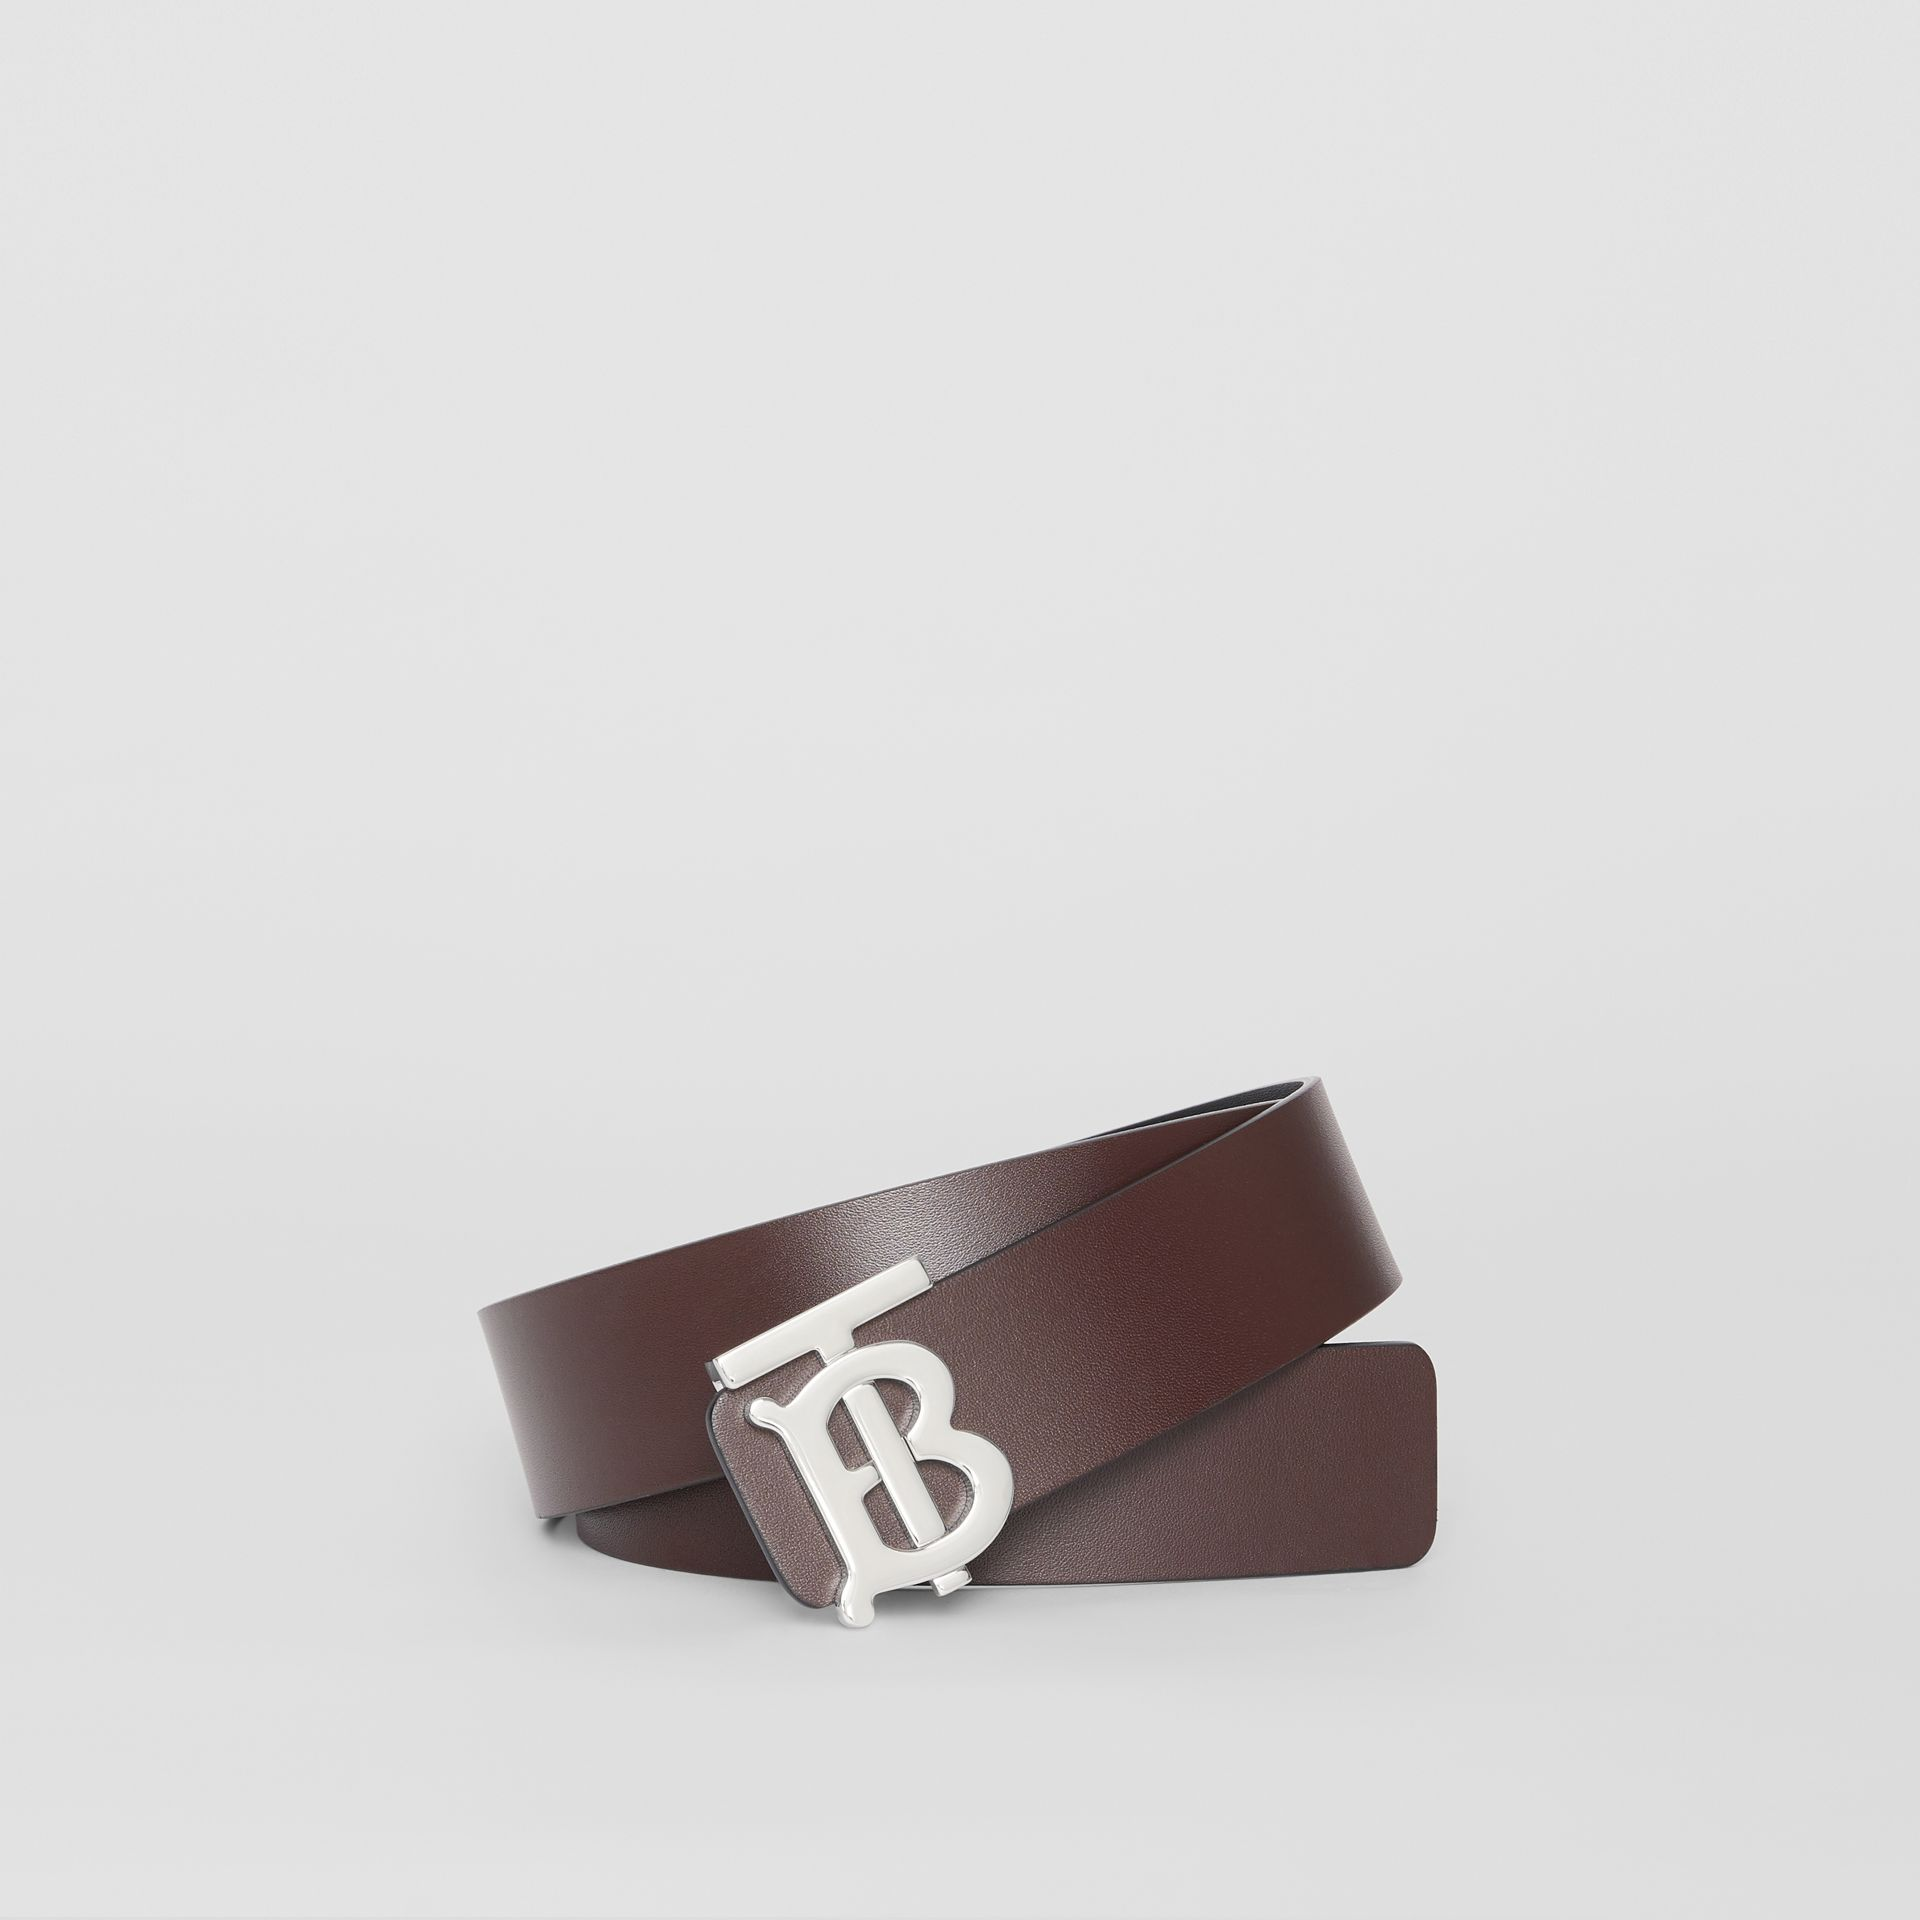 Ceinture en cuir réversible Monogram (Oxblood) - Homme | Burberry Canada - photo de la galerie 0